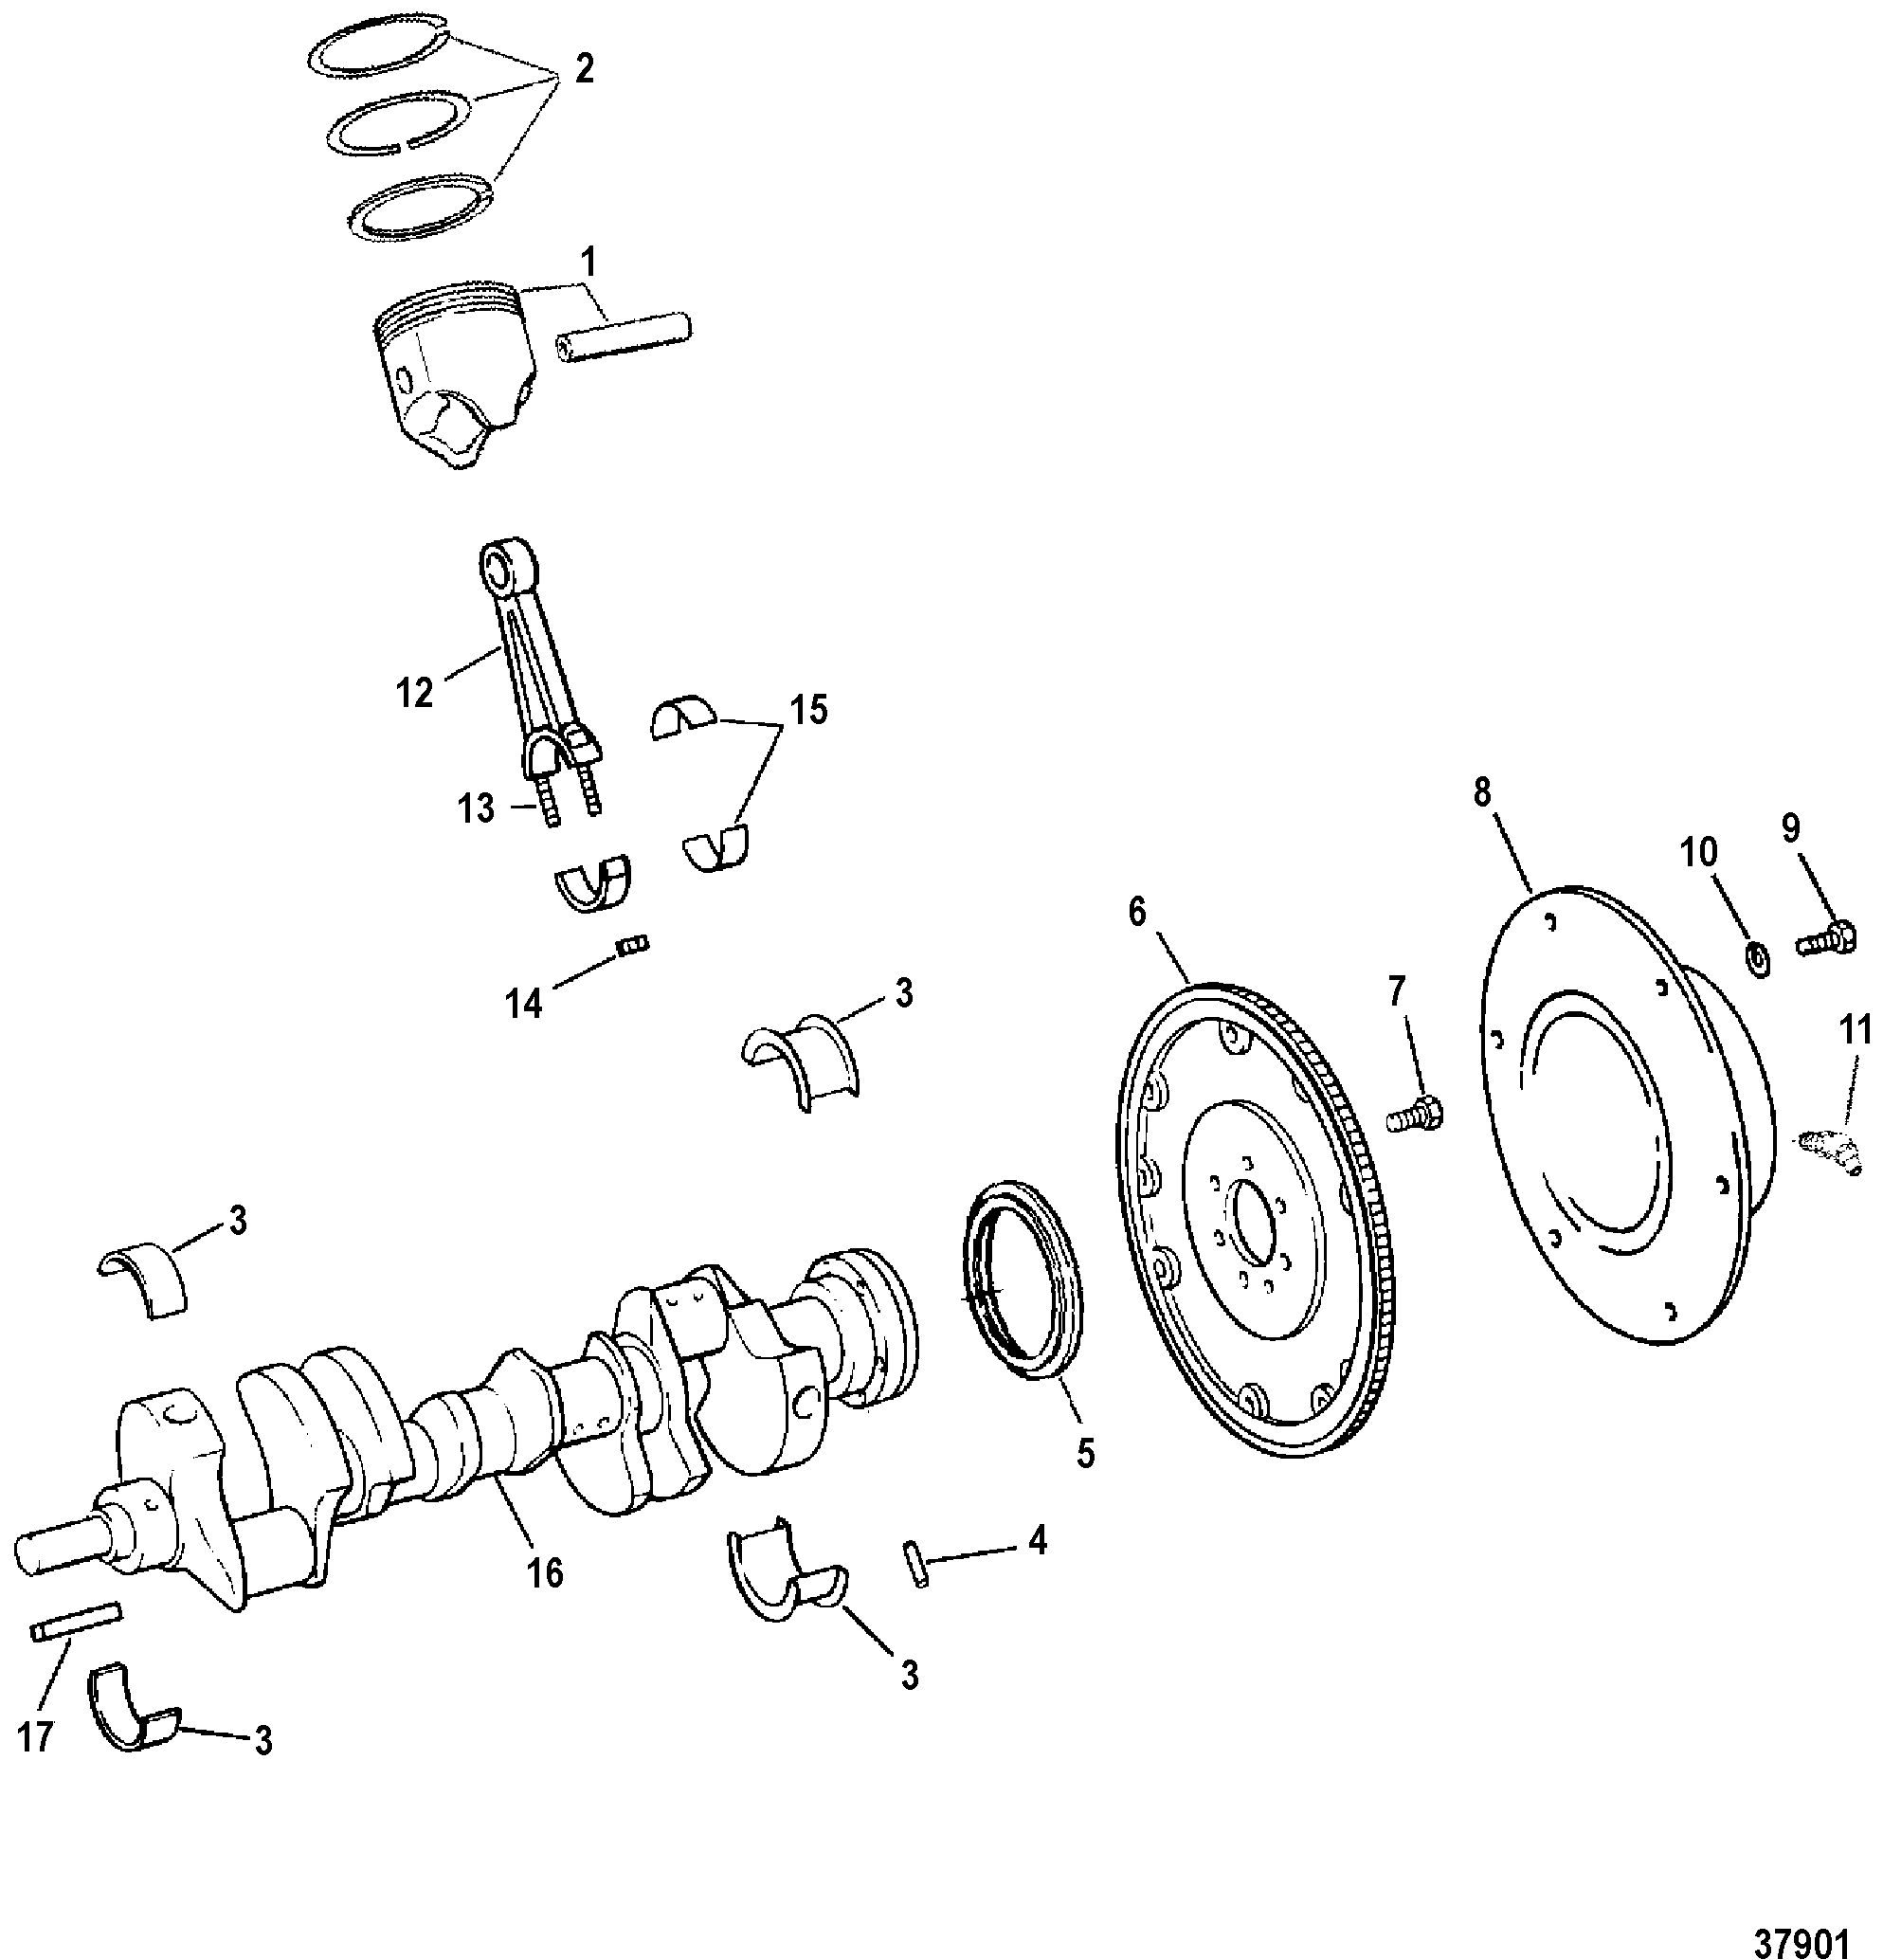 454 efi (gen 5) gm v-8 1994-1996 - serial 0f115700 thru 0f802349 -  crankshaft, pistons and connecting rods